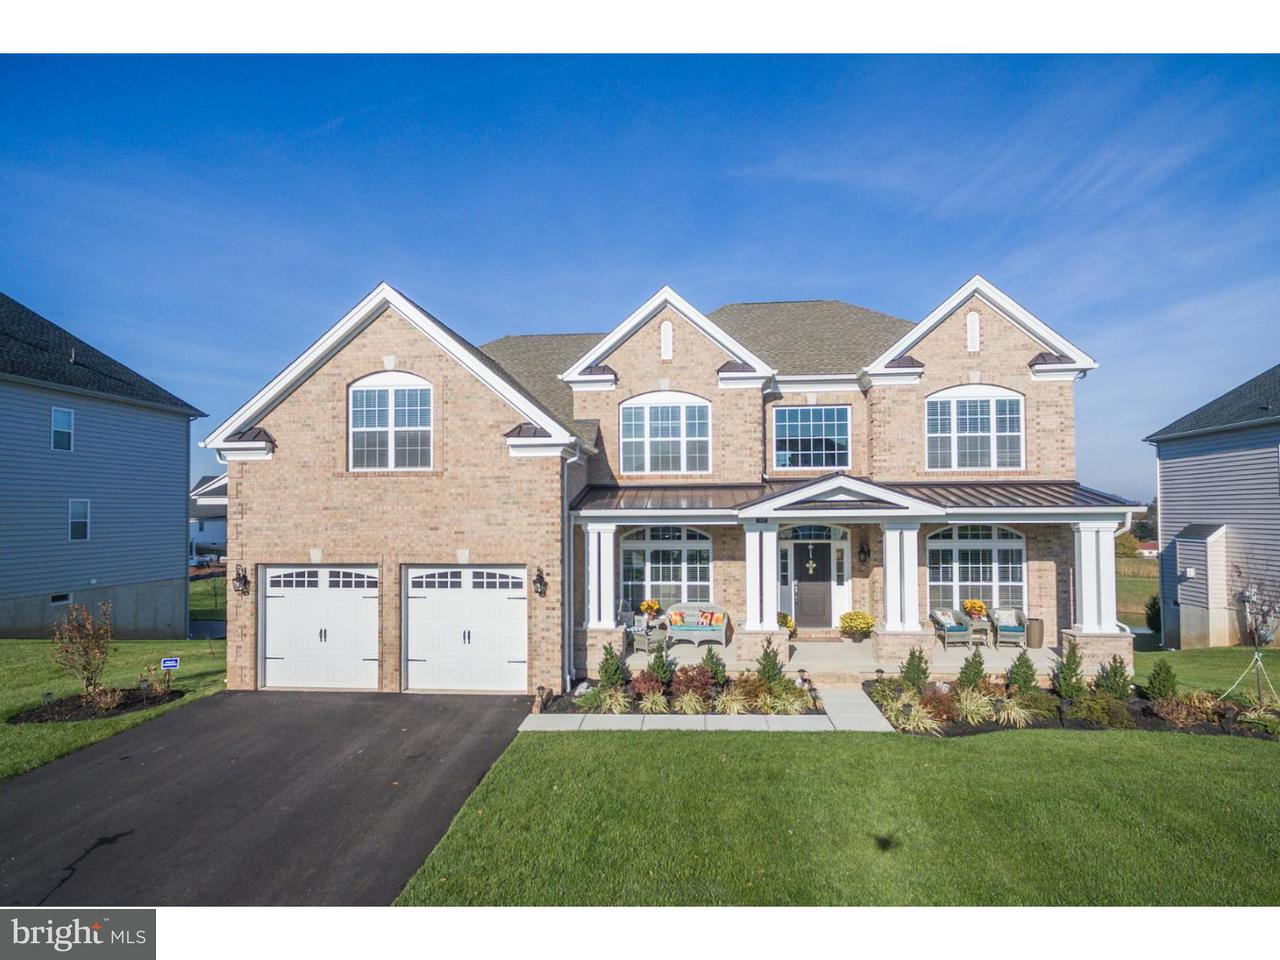 Single Family Home for Sale at 104 KAITLIN Drive Collegeville, Pennsylvania 19426 United States